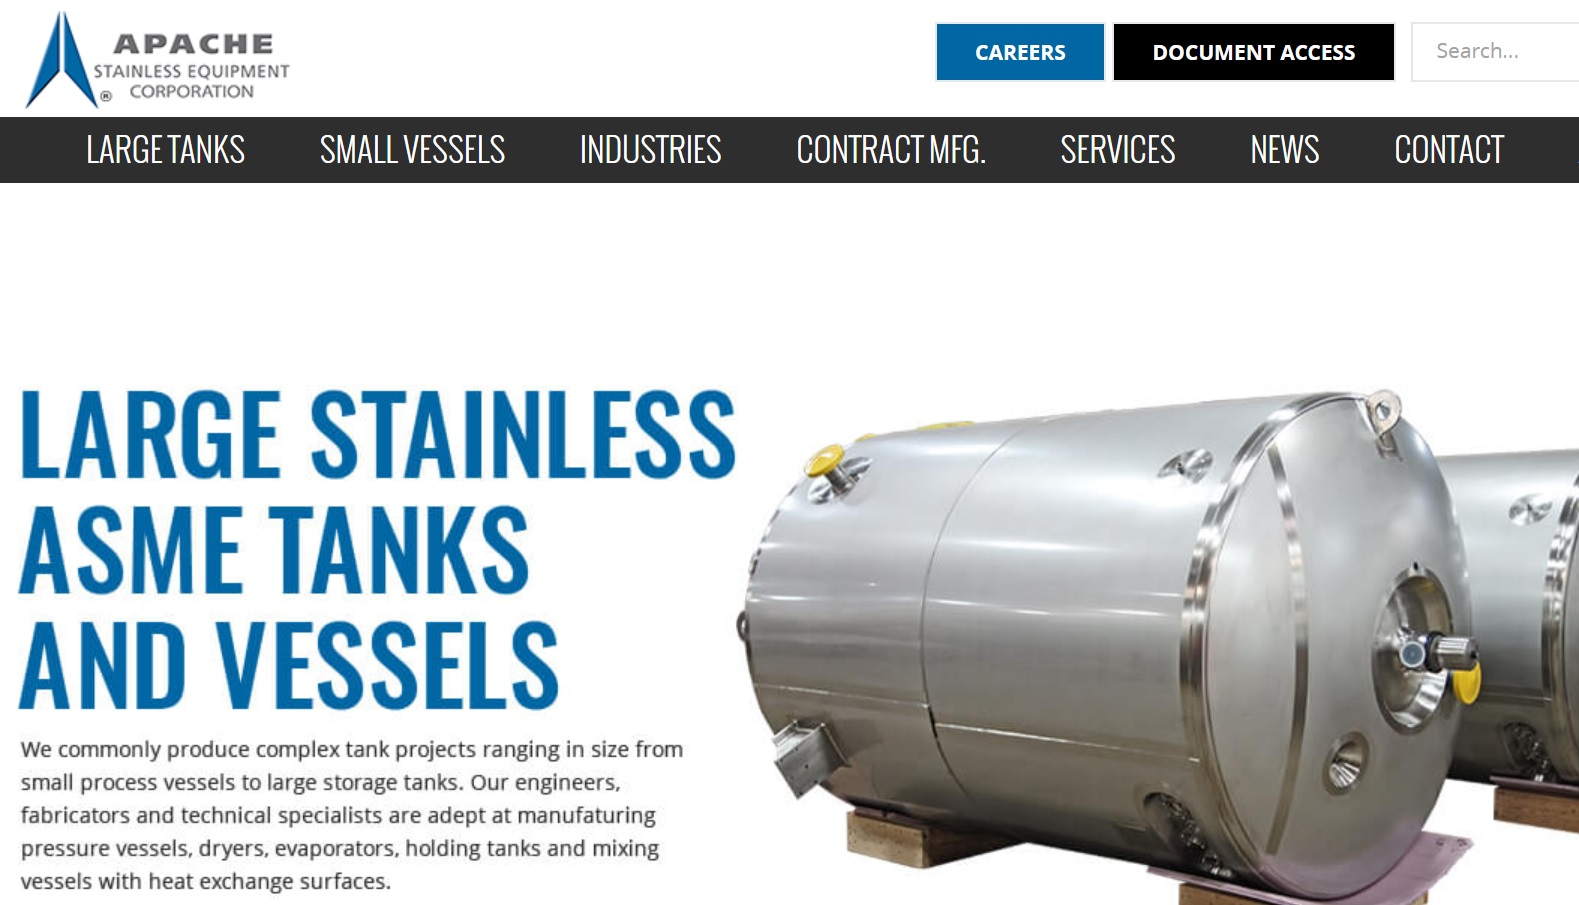 Apache Stainless Equipment Corp.